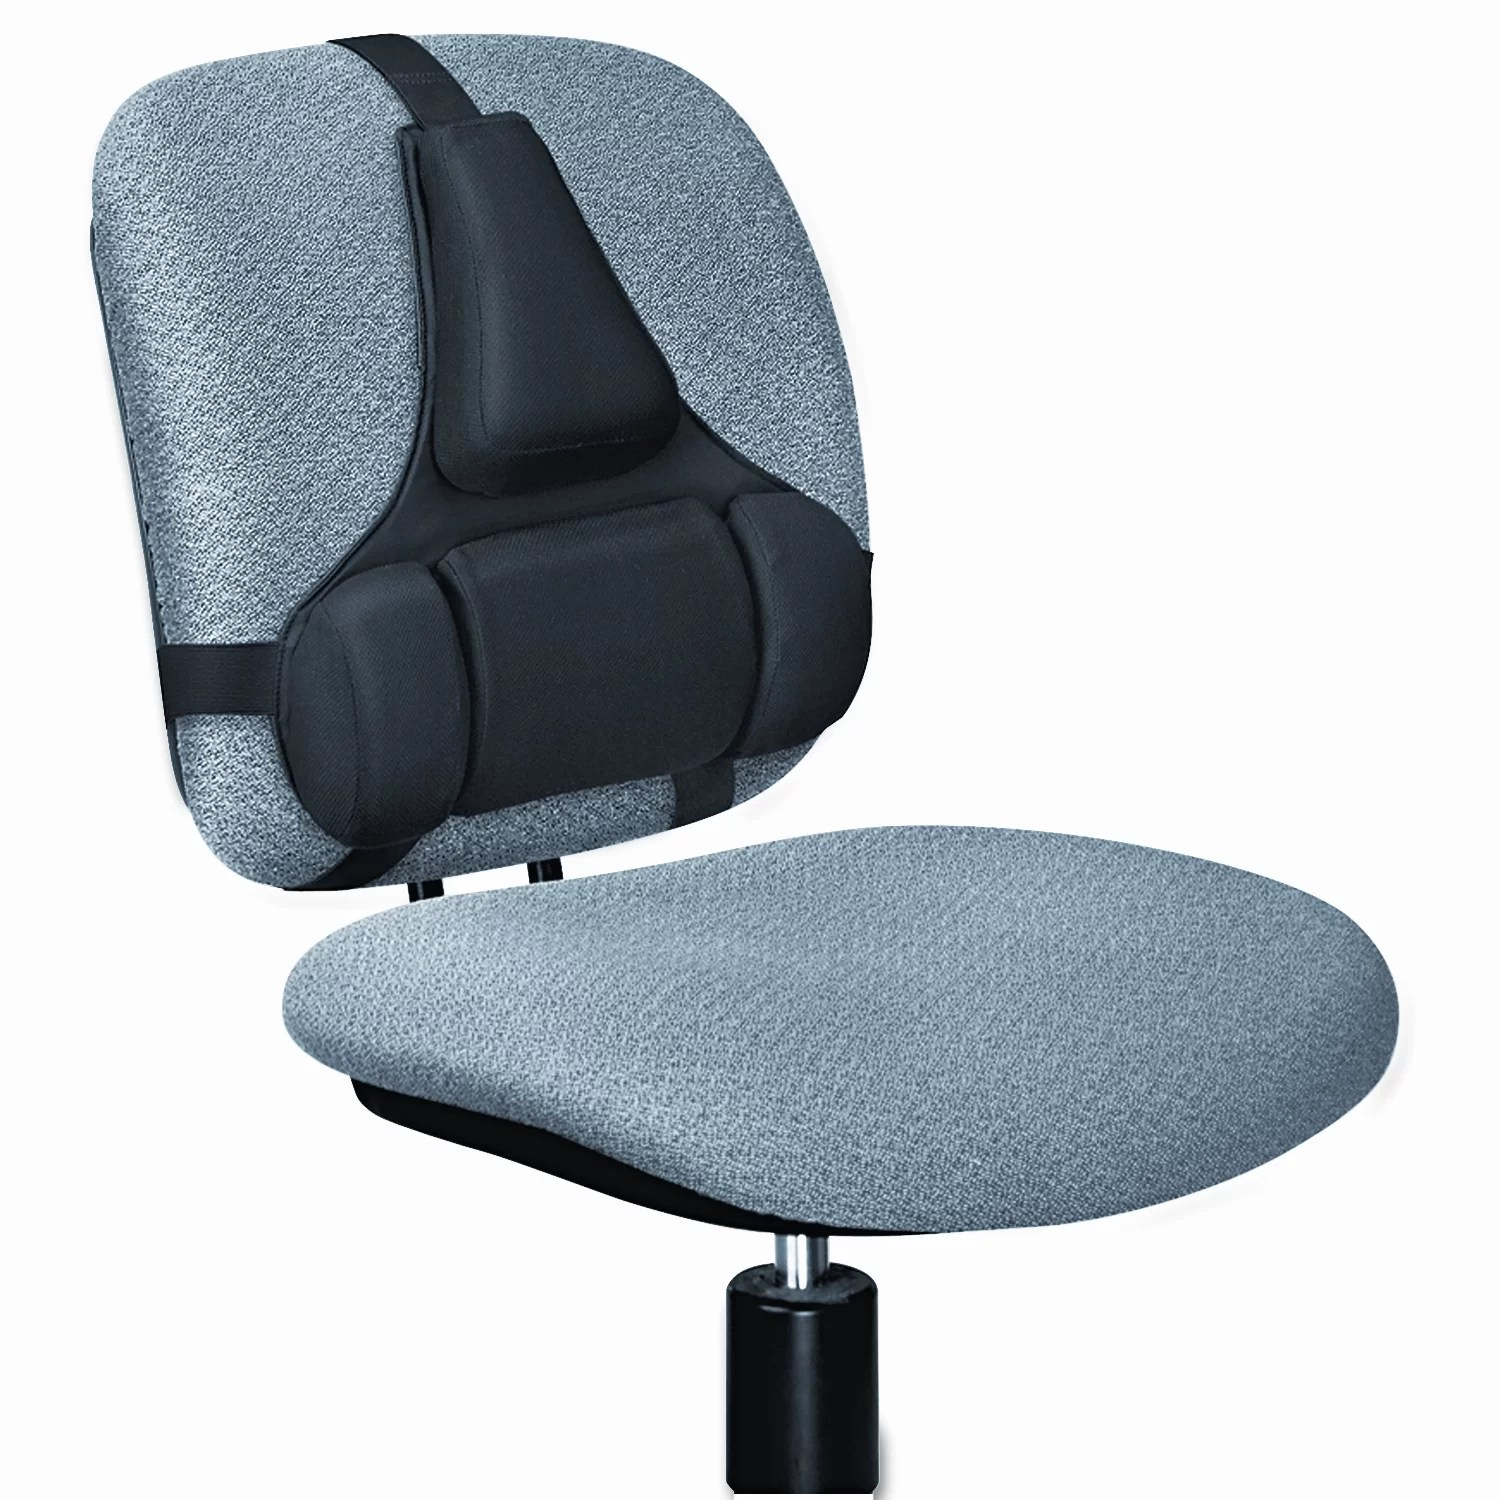 office chair back support cushion reviews mid century modern desk target fellowes manufacturing professional series